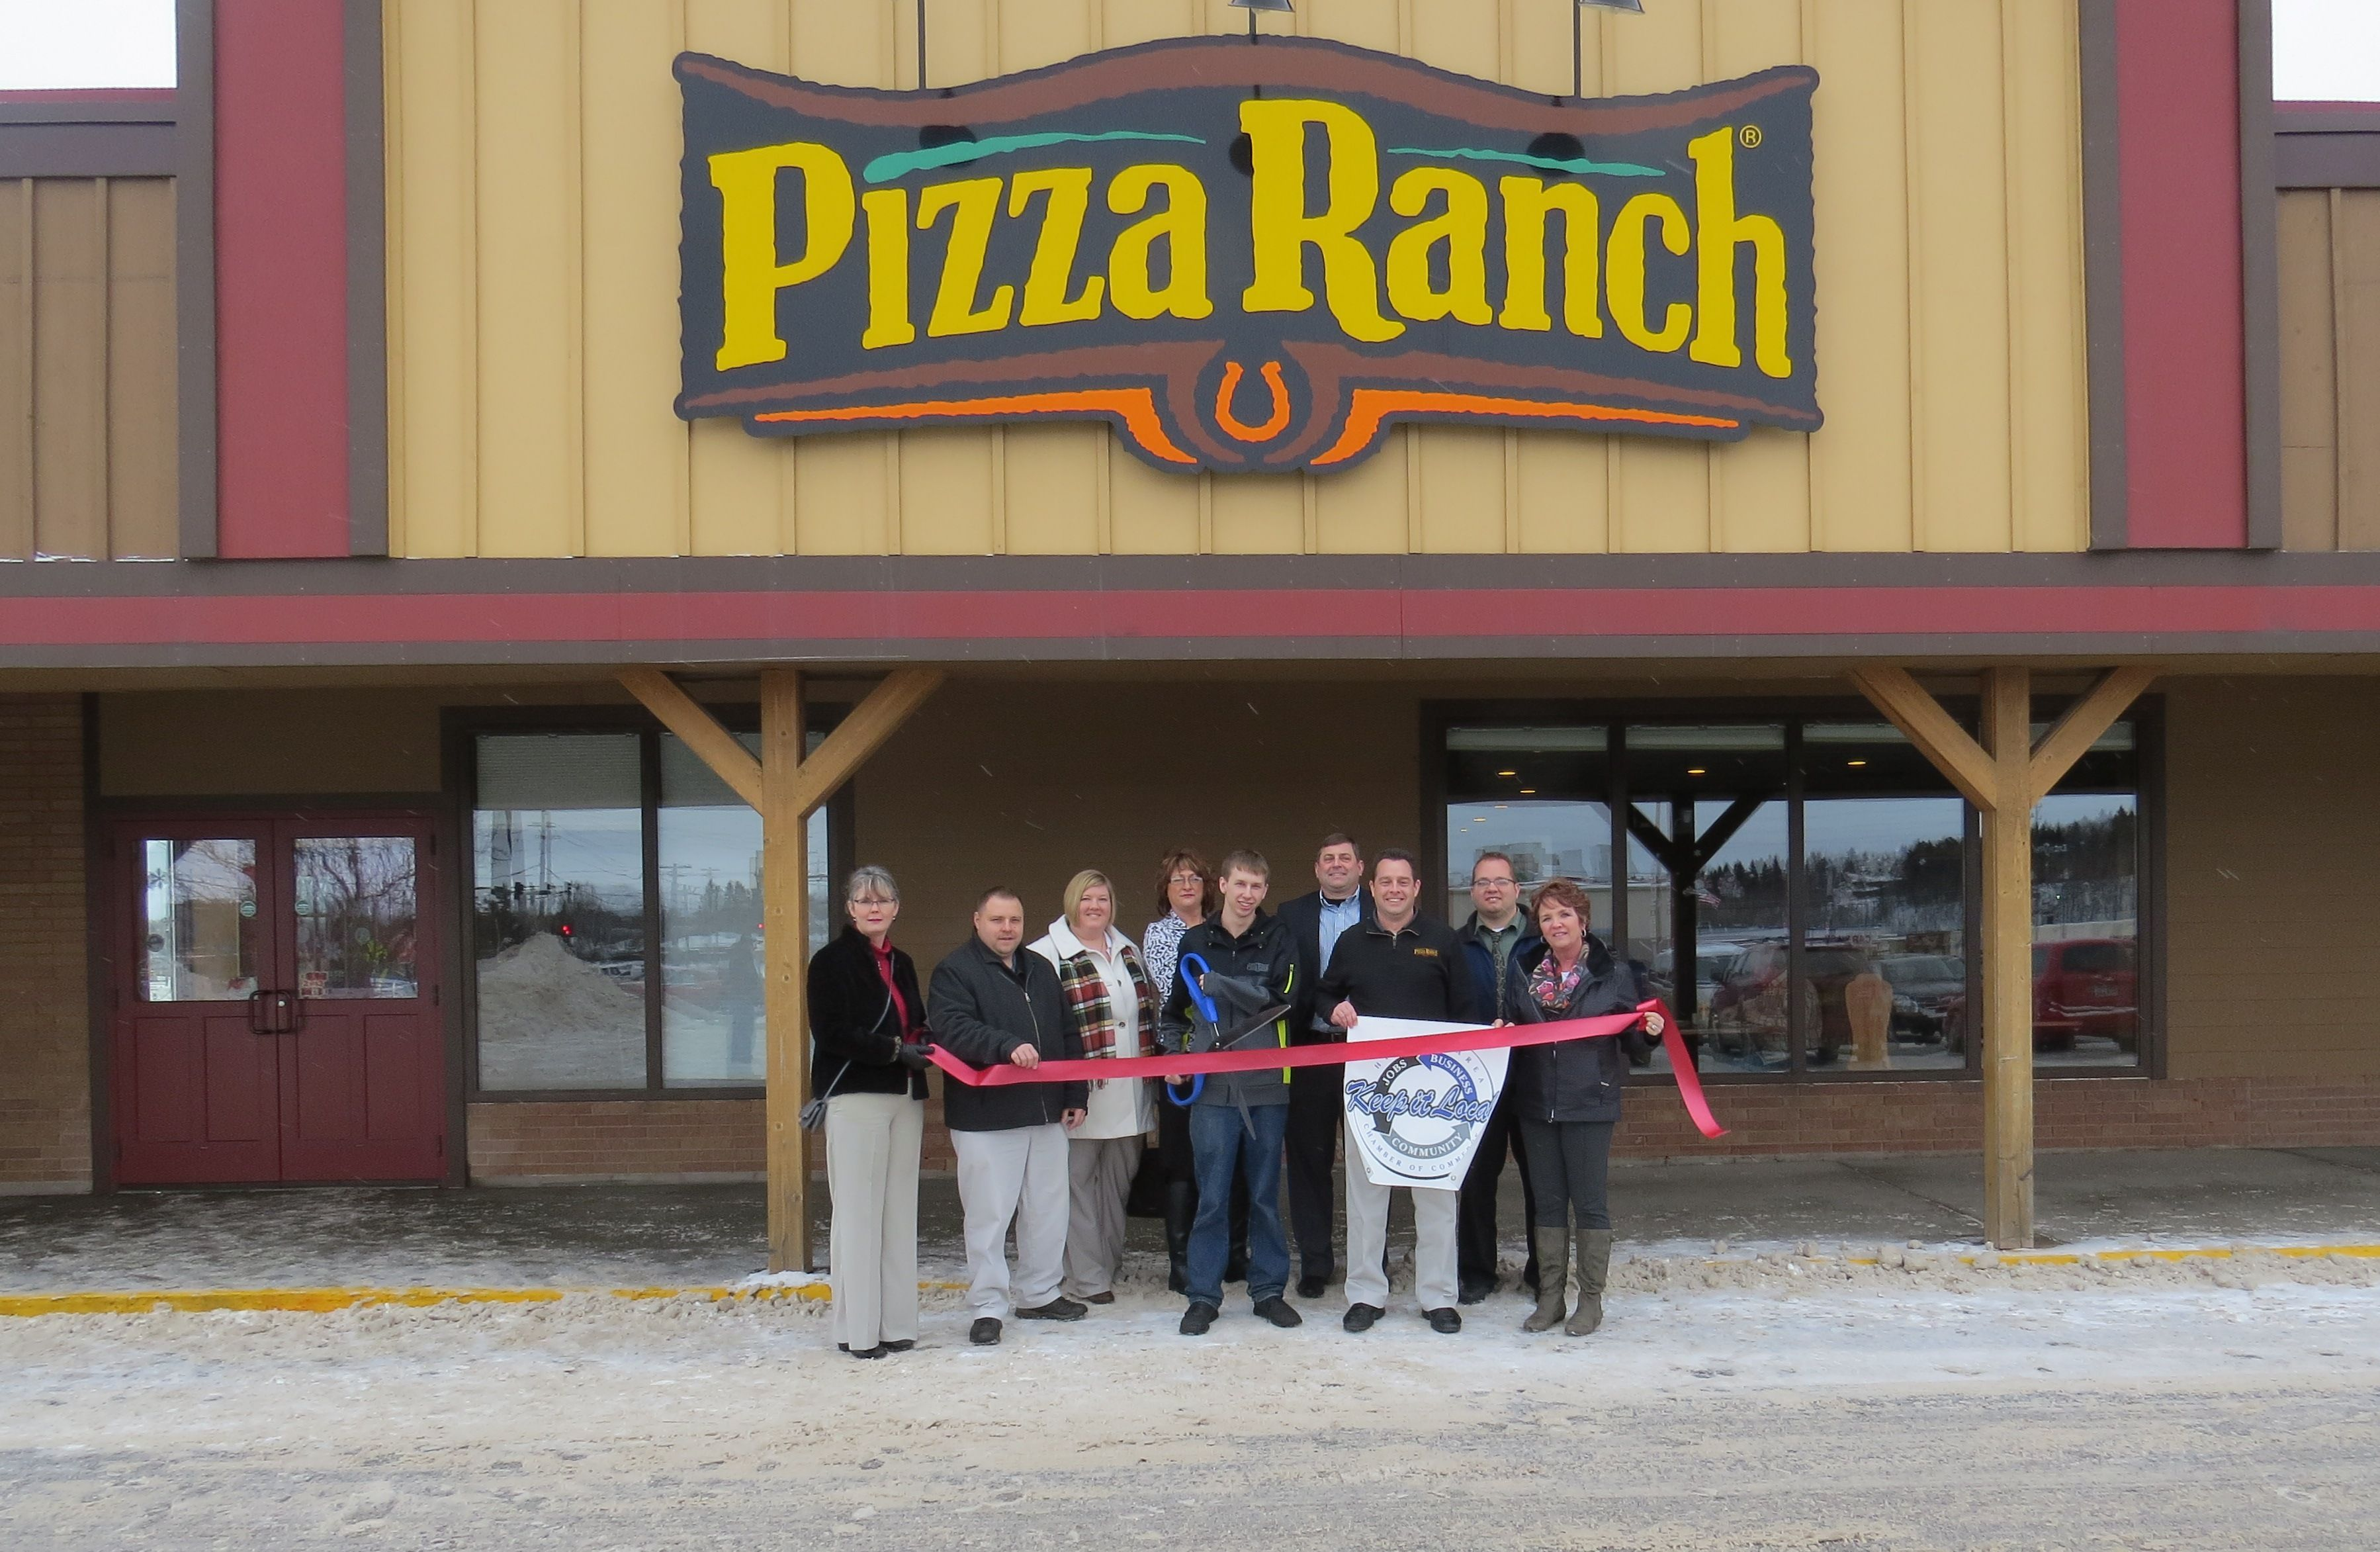 Americas Best Value Inn Hibbing Congratulations To Pizza Ranch Of Hibbing Which Is Under New